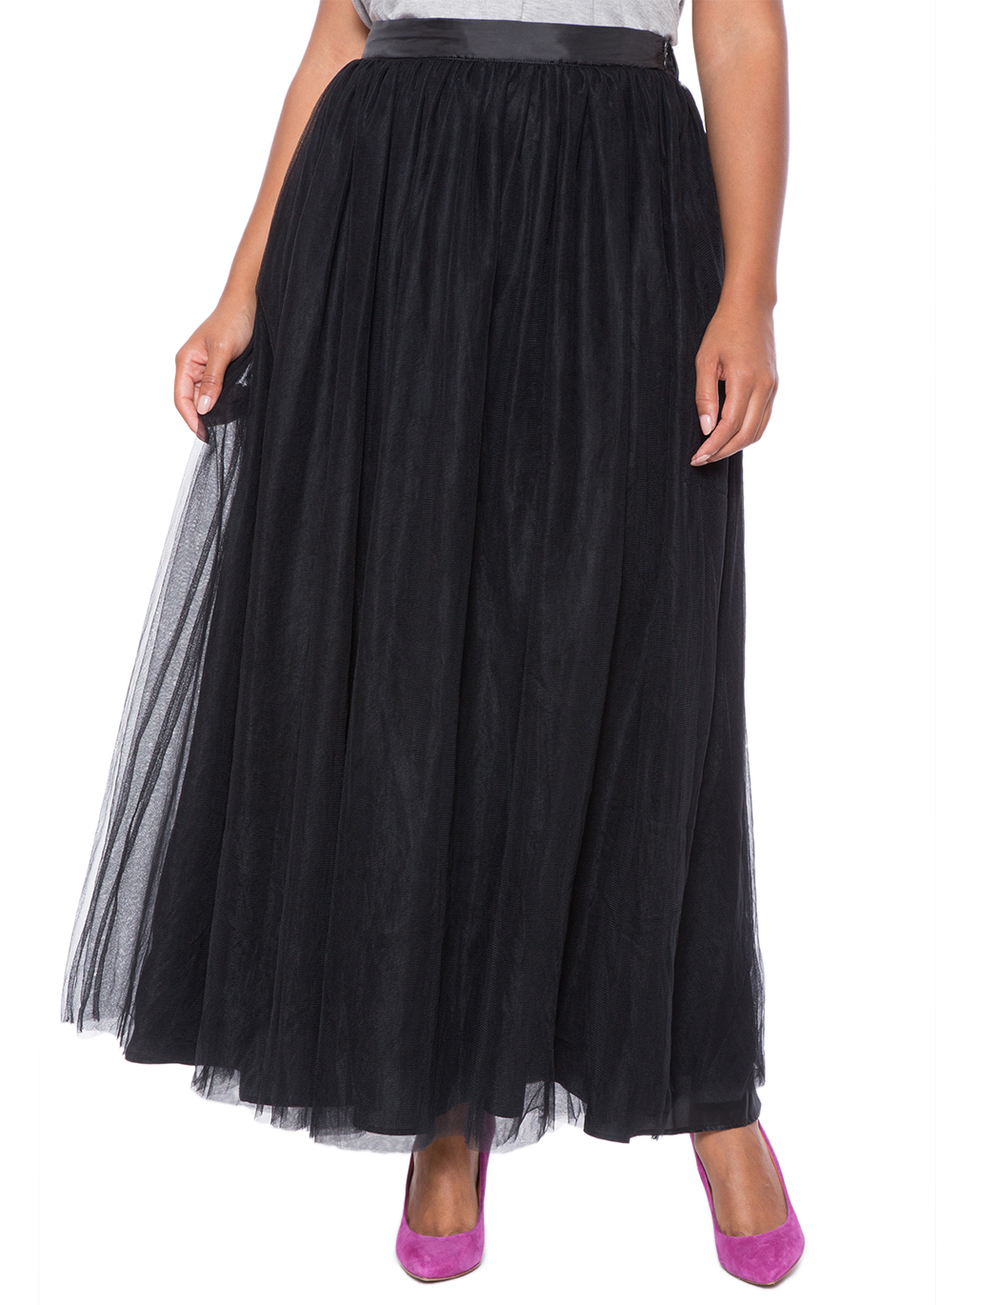 Studio Tulle Maxi Skirt. Eloquii. $119. ($50 off every $100 you spend with code: ENJOY)